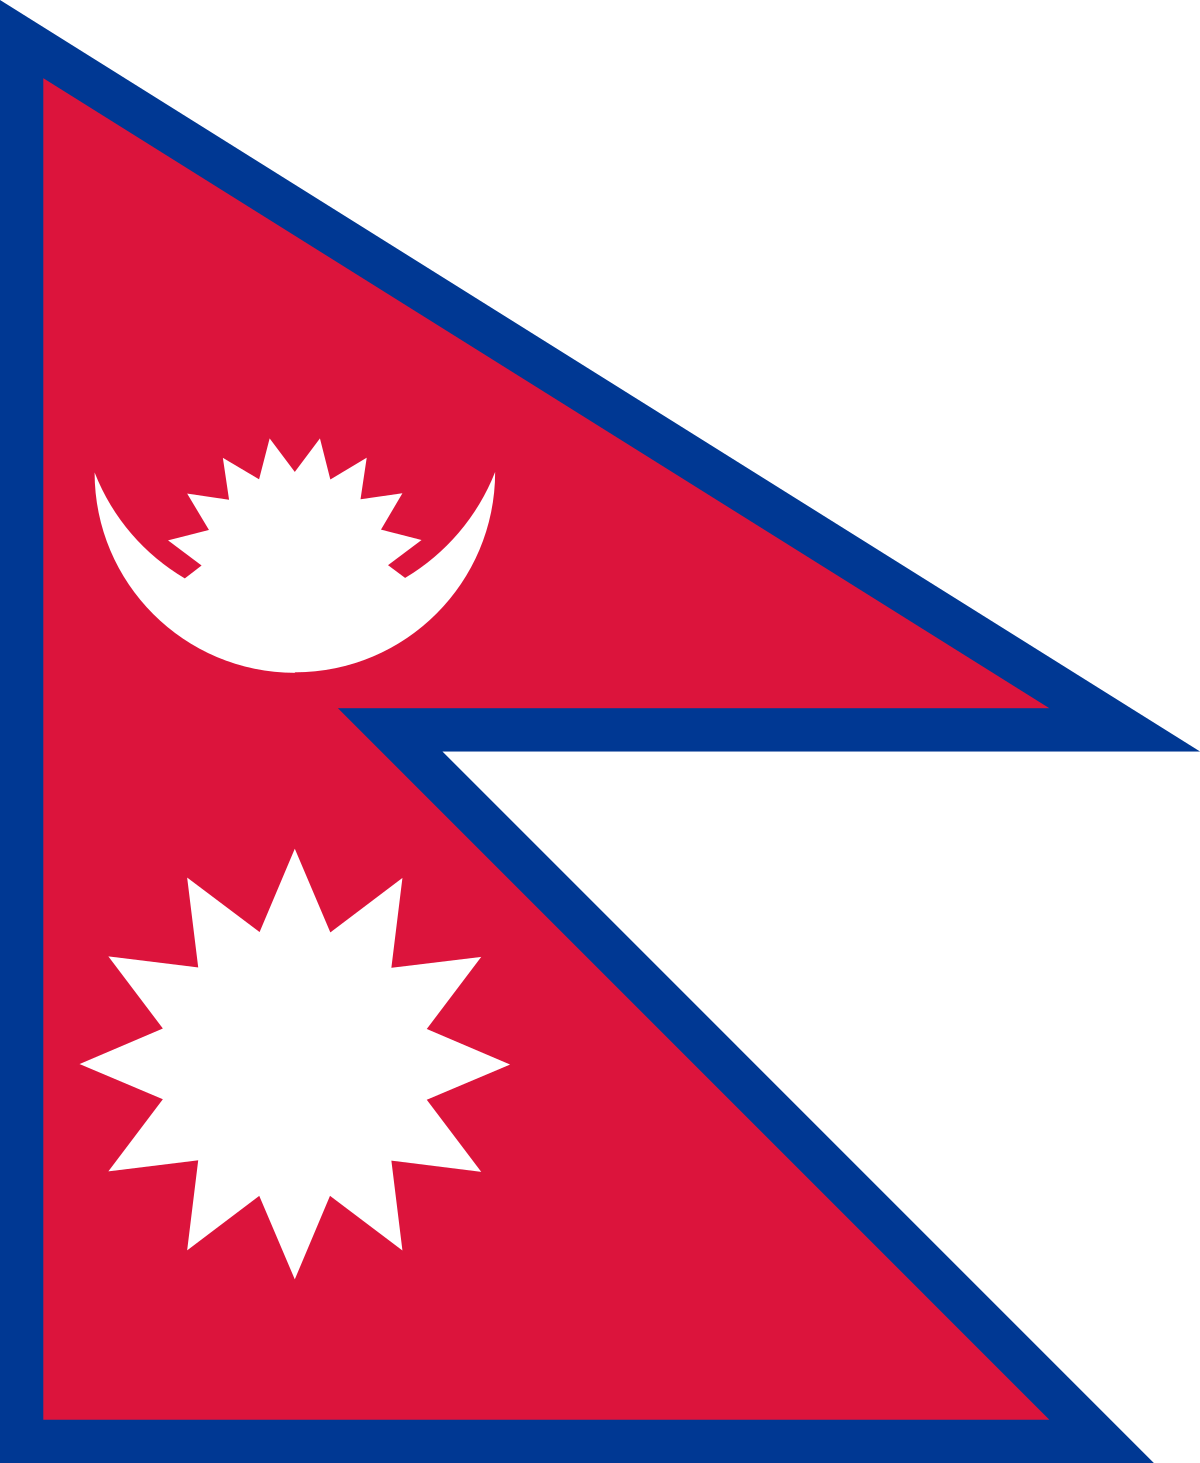 Nepal has the most mathematical flag in the world. It even has an article in its constitution that details the steps of drawing the flag